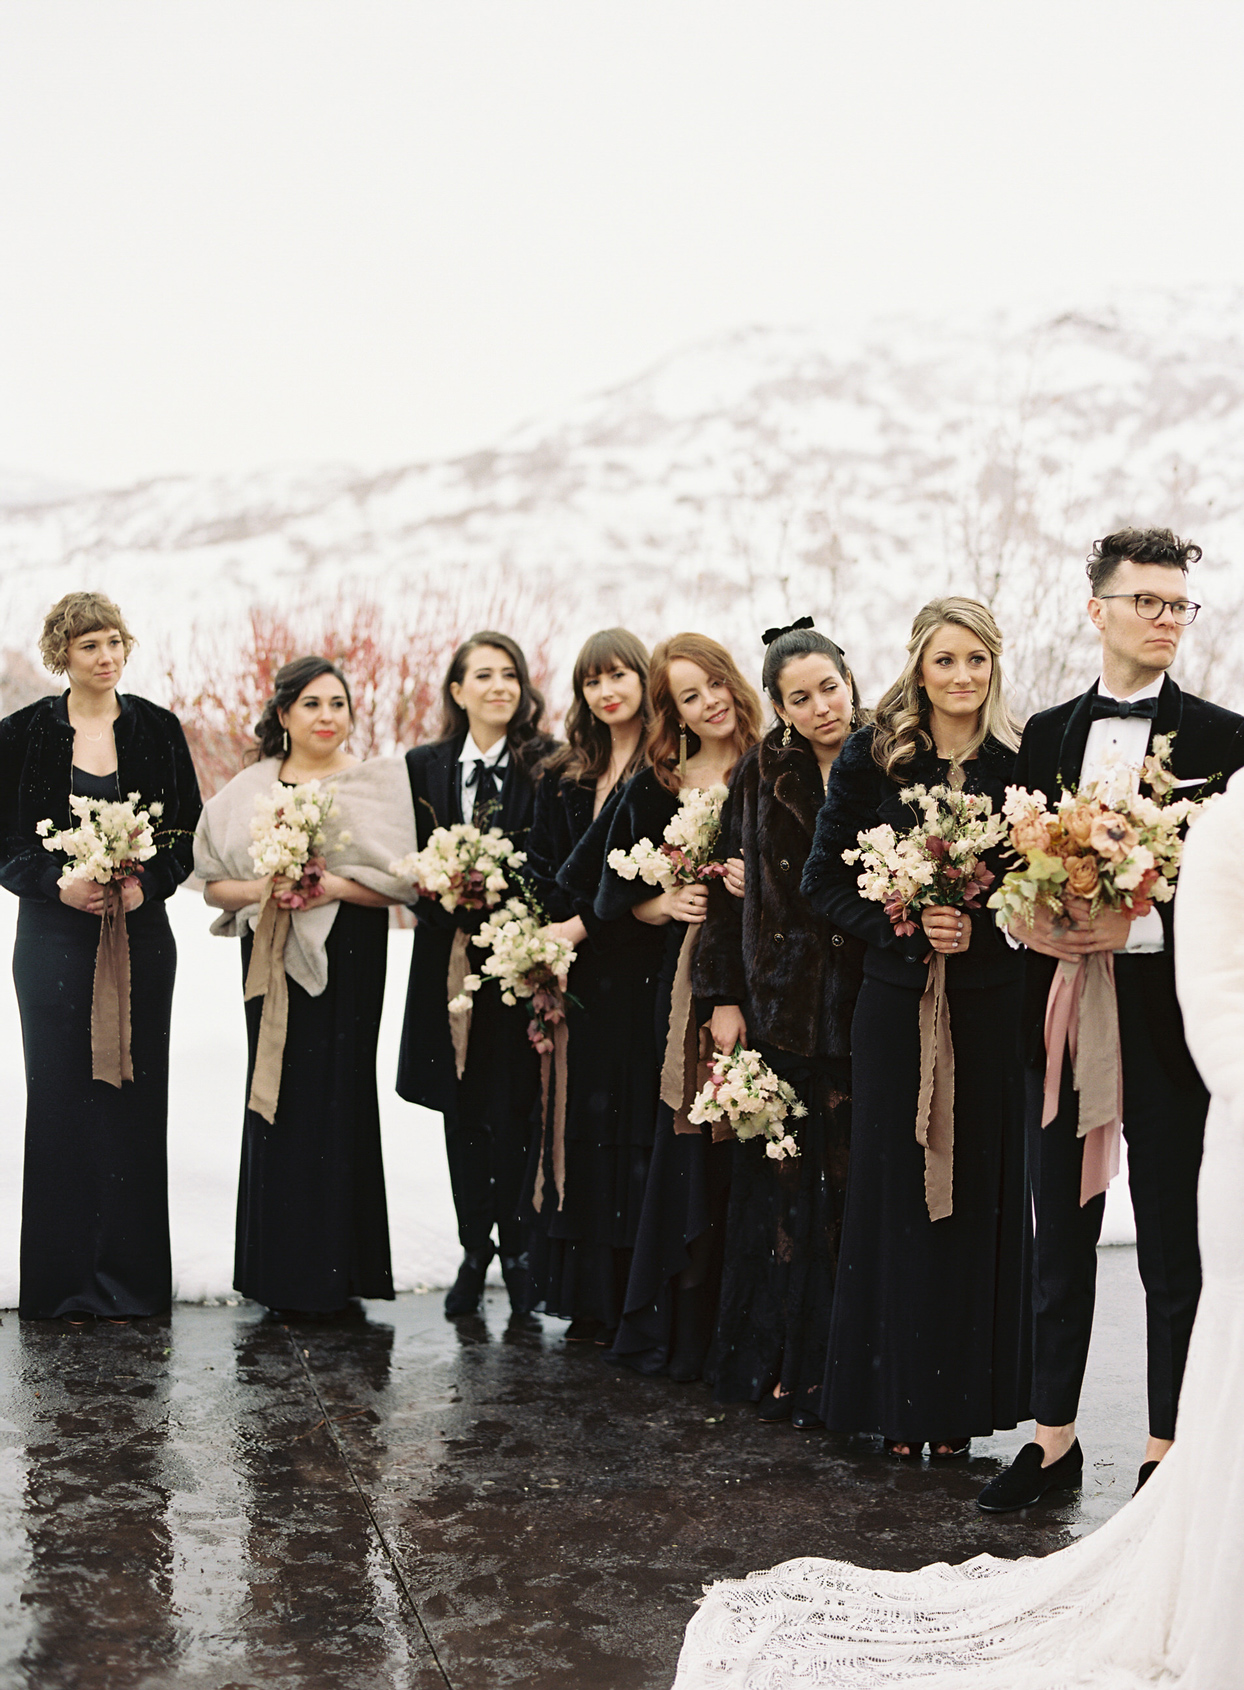 bridesmaids during wedding ceremony outside snowing while wearing black